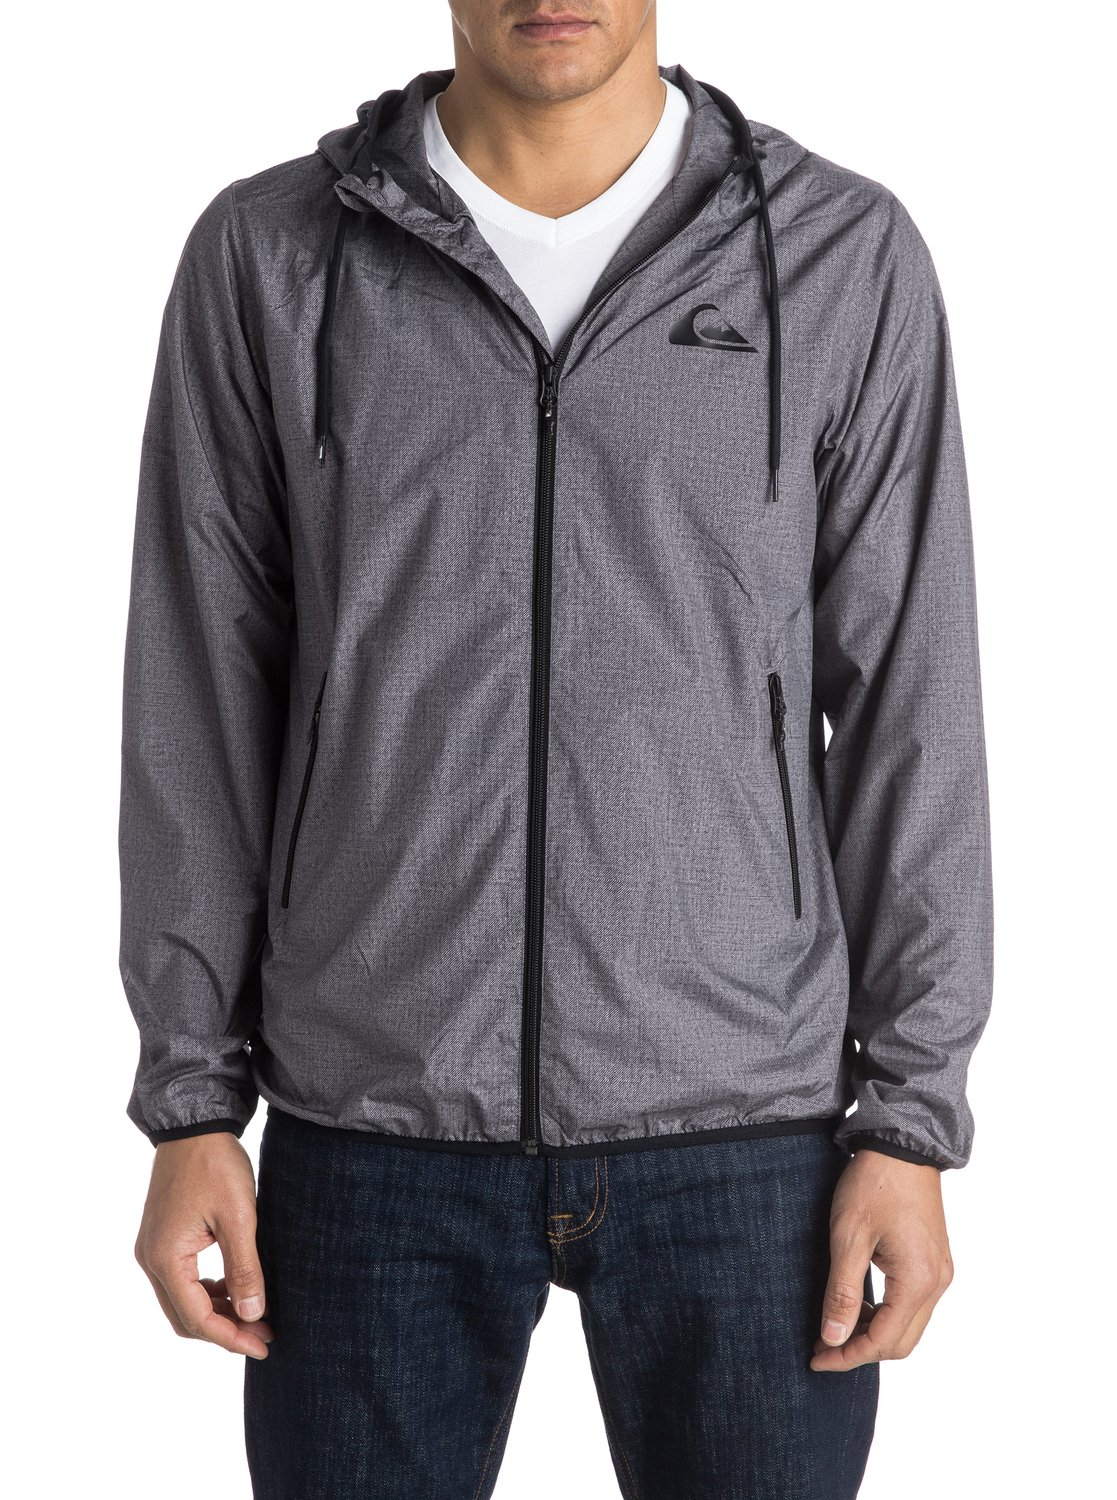 Everyday Everyday Vent Quiksilver Coupe Eqyjk03238 Vent Coupe Coupe Everyday Eqyjk03238 Quiksilver R1wqUn4